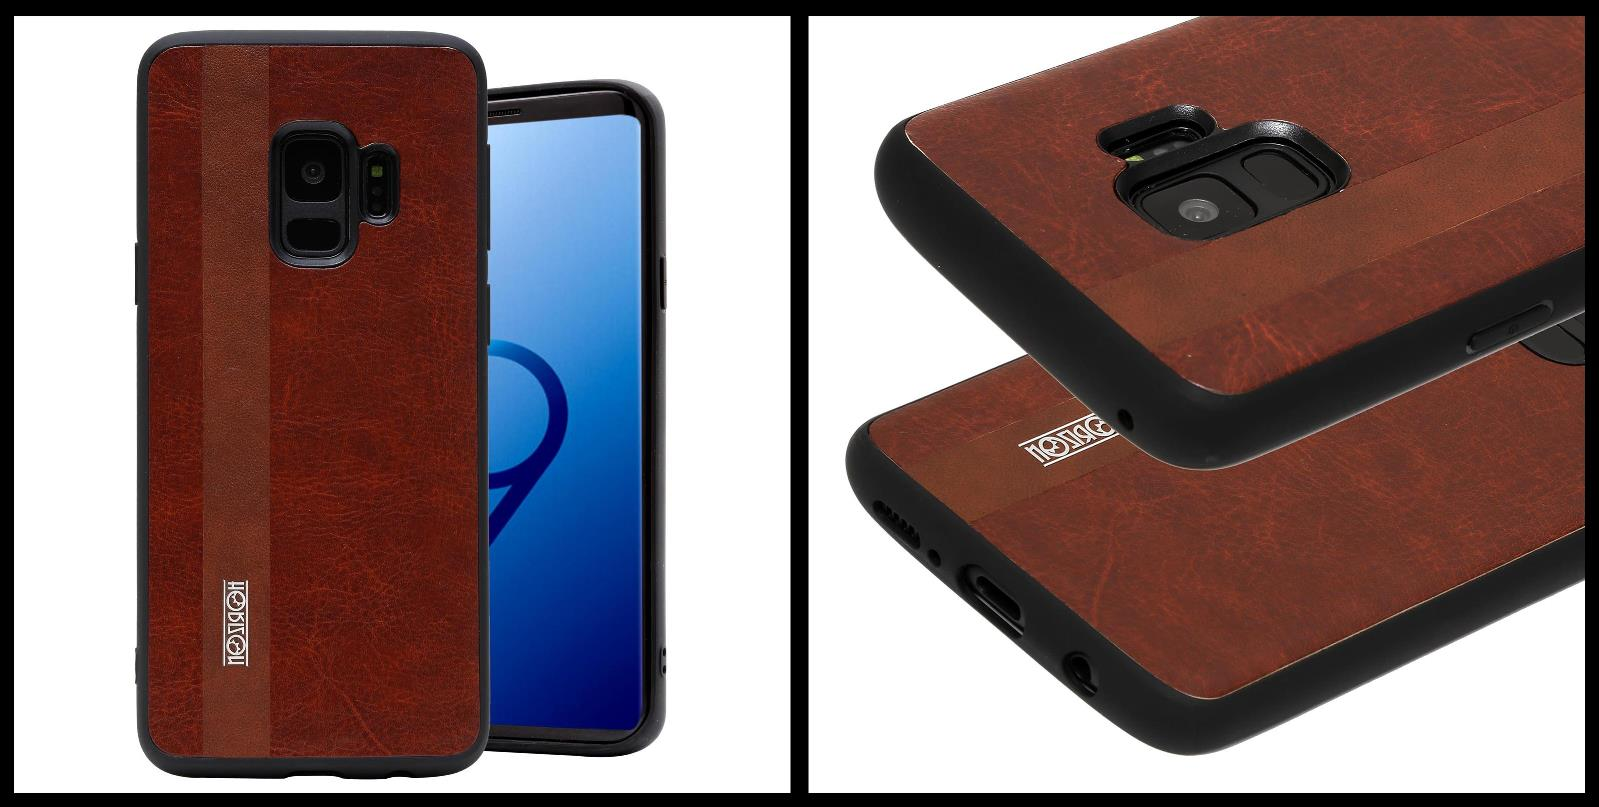 noziroh-leather-samsung-galaxy-s9-cover-case-shockproof-slim-design-brown-black